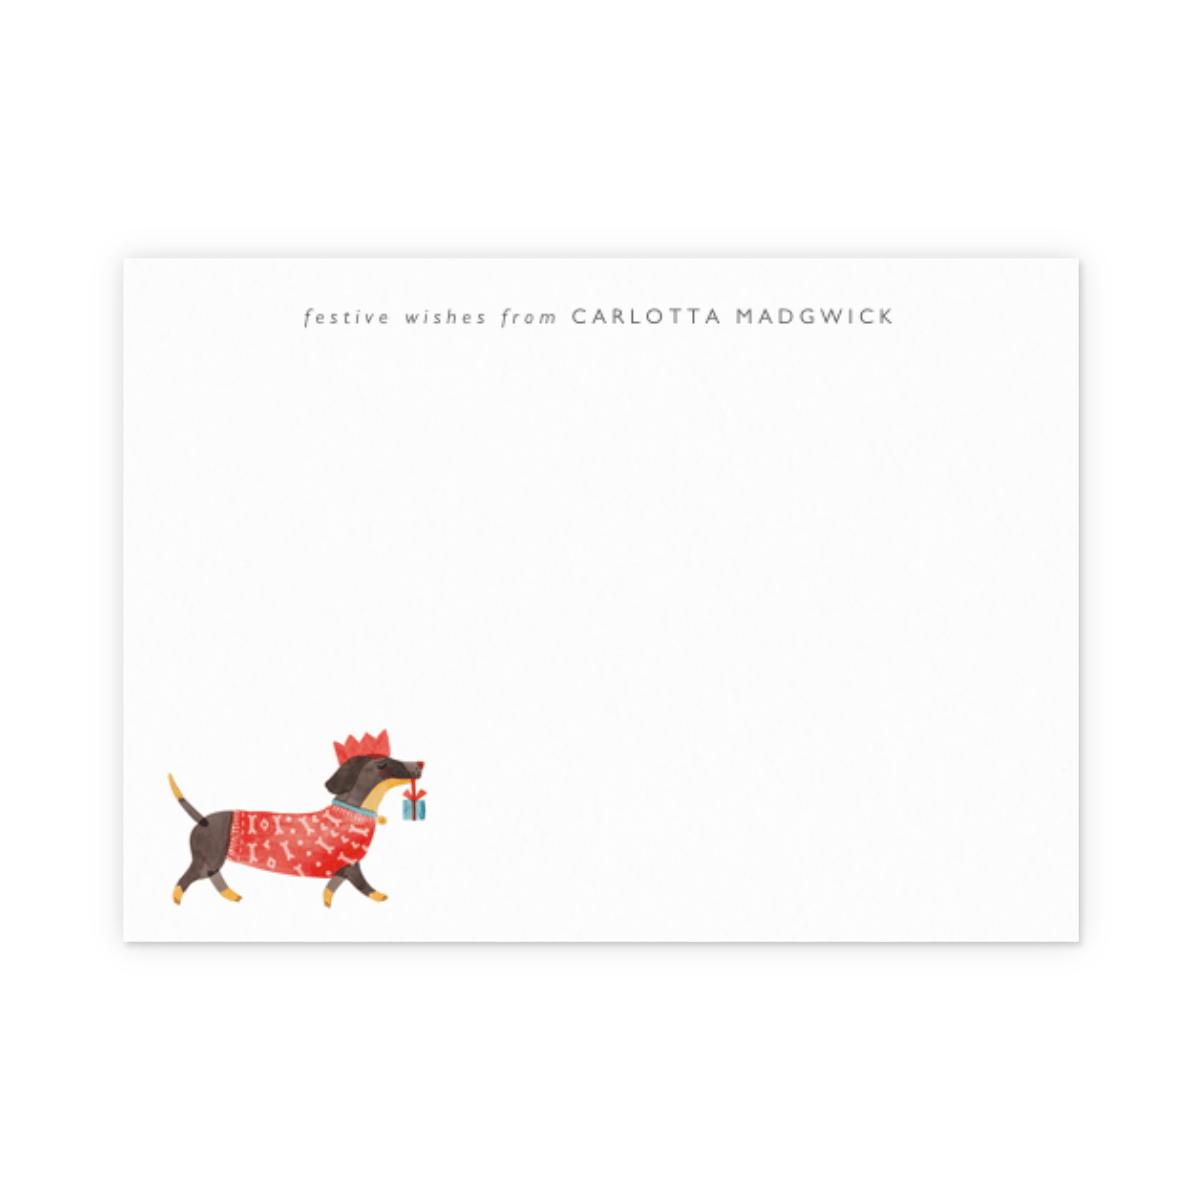 Https%3a%2f%2fwww.papier.com%2fproduct image%2f95878%2f10%2fchristmas dachshund 24037 front 1572870456.png?ixlib=rb 1.1